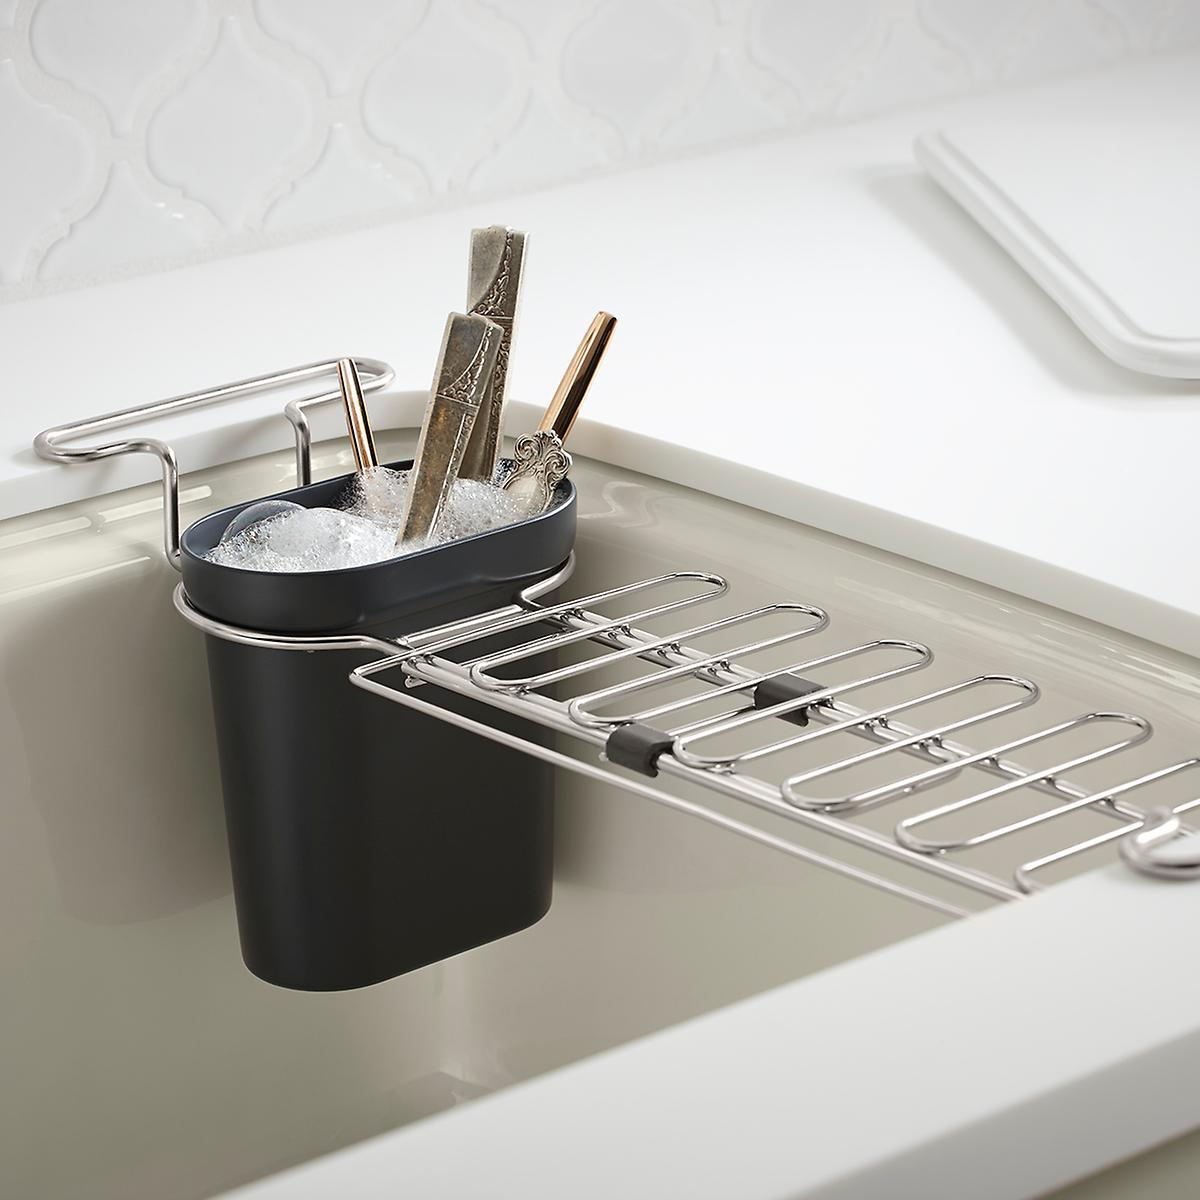 kohler chrome kitchen sink utility rack | the container store